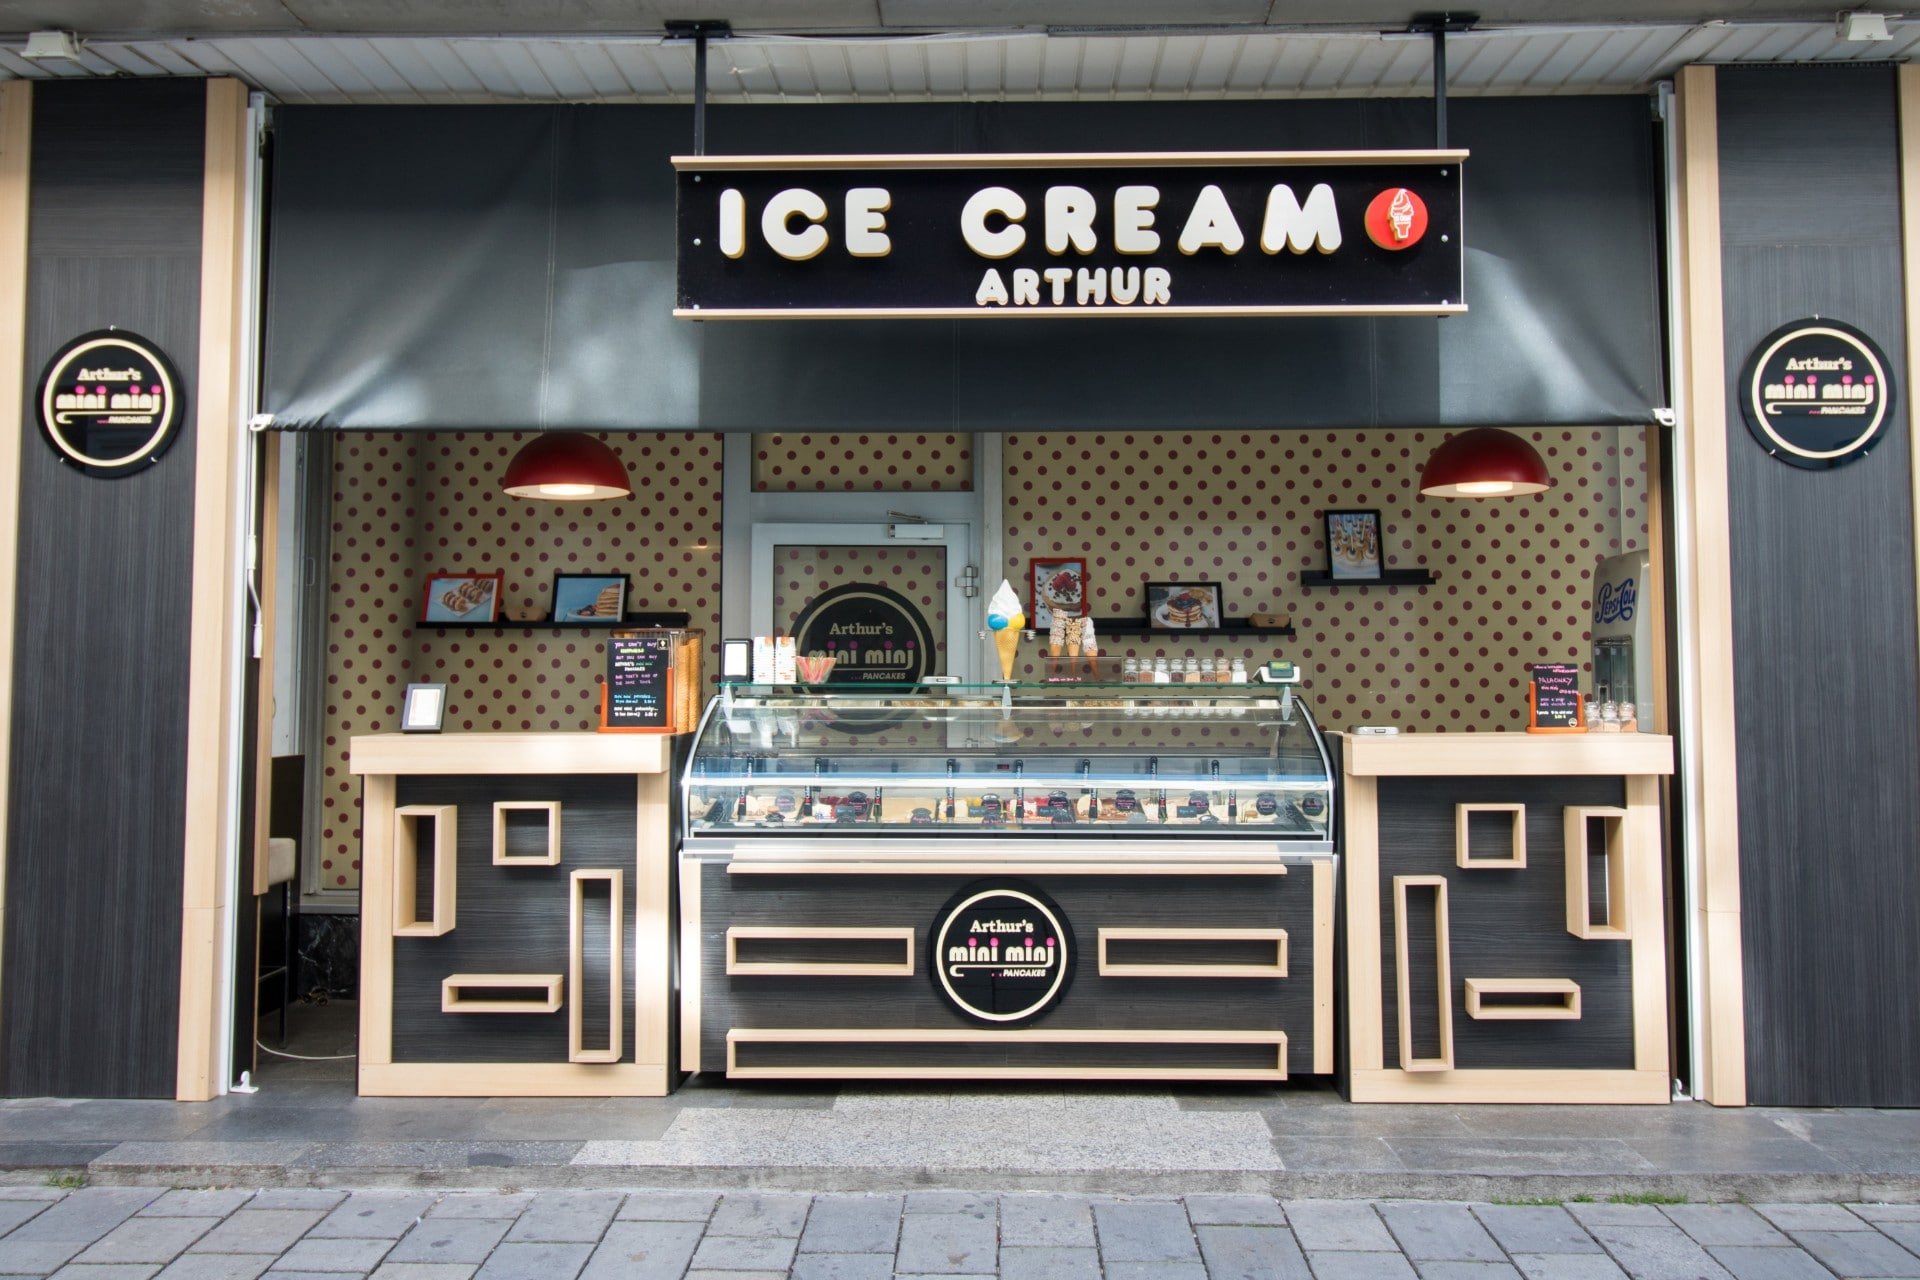 arthurs-ice-cream-shop-little-ice-cream-kiosk